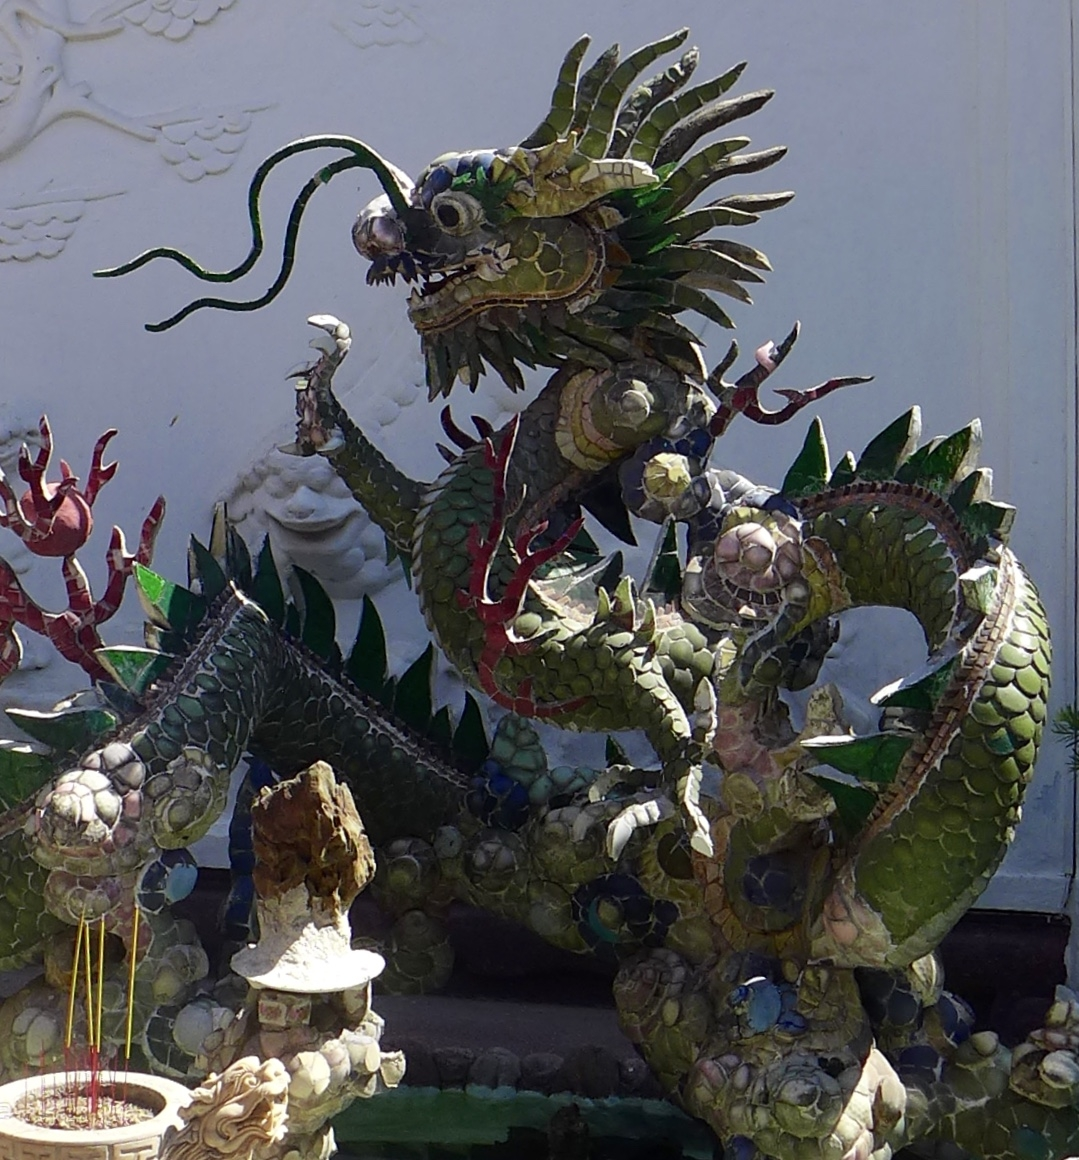 Green dragon sculpture with long whiskers